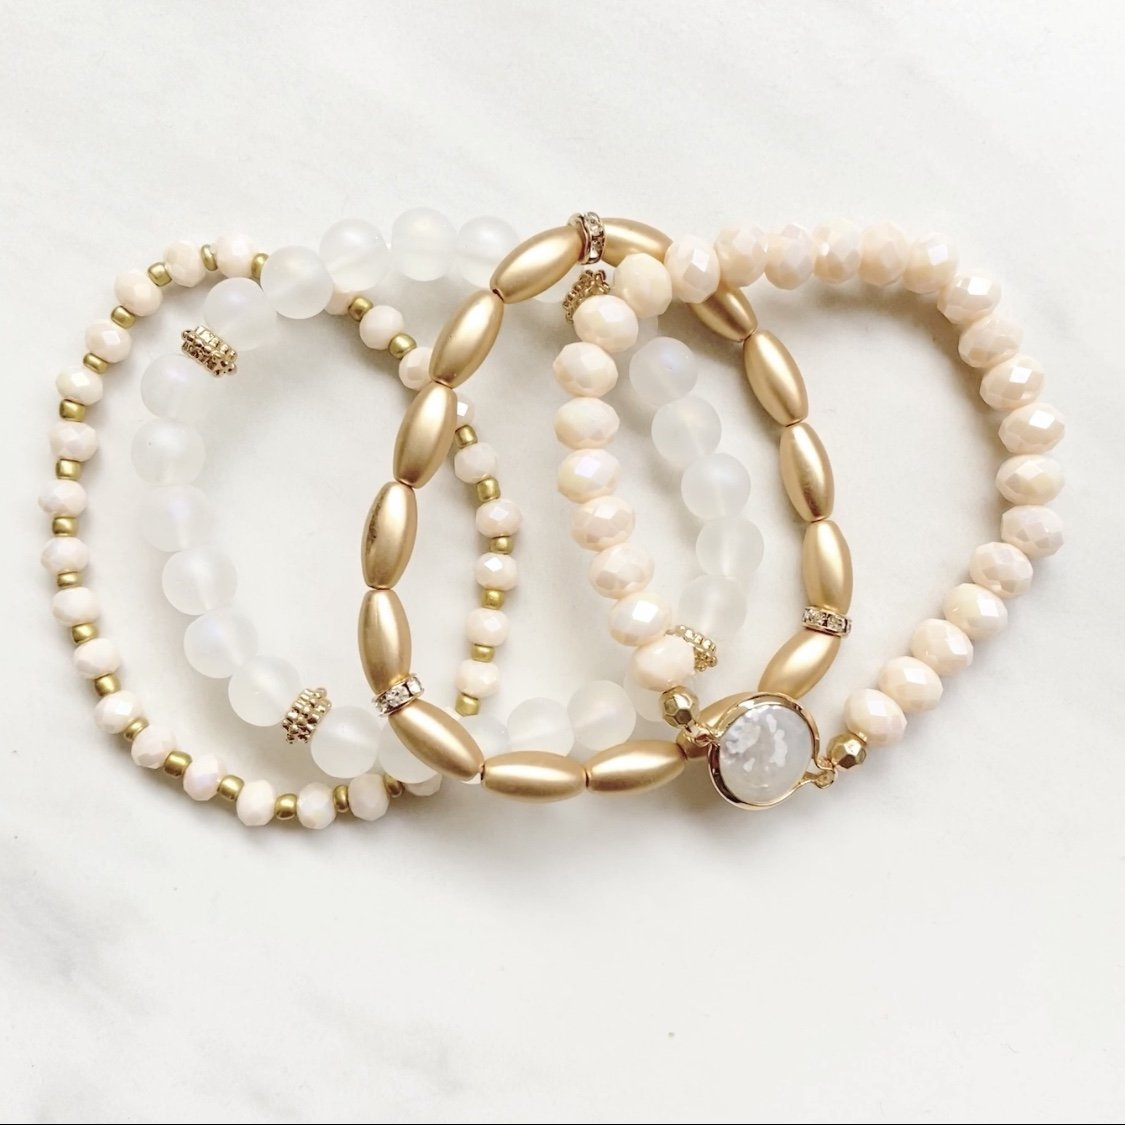 Warm Wishes Bead Bangle Bracelet Set in Gold & Cream - Dainty Hooligan